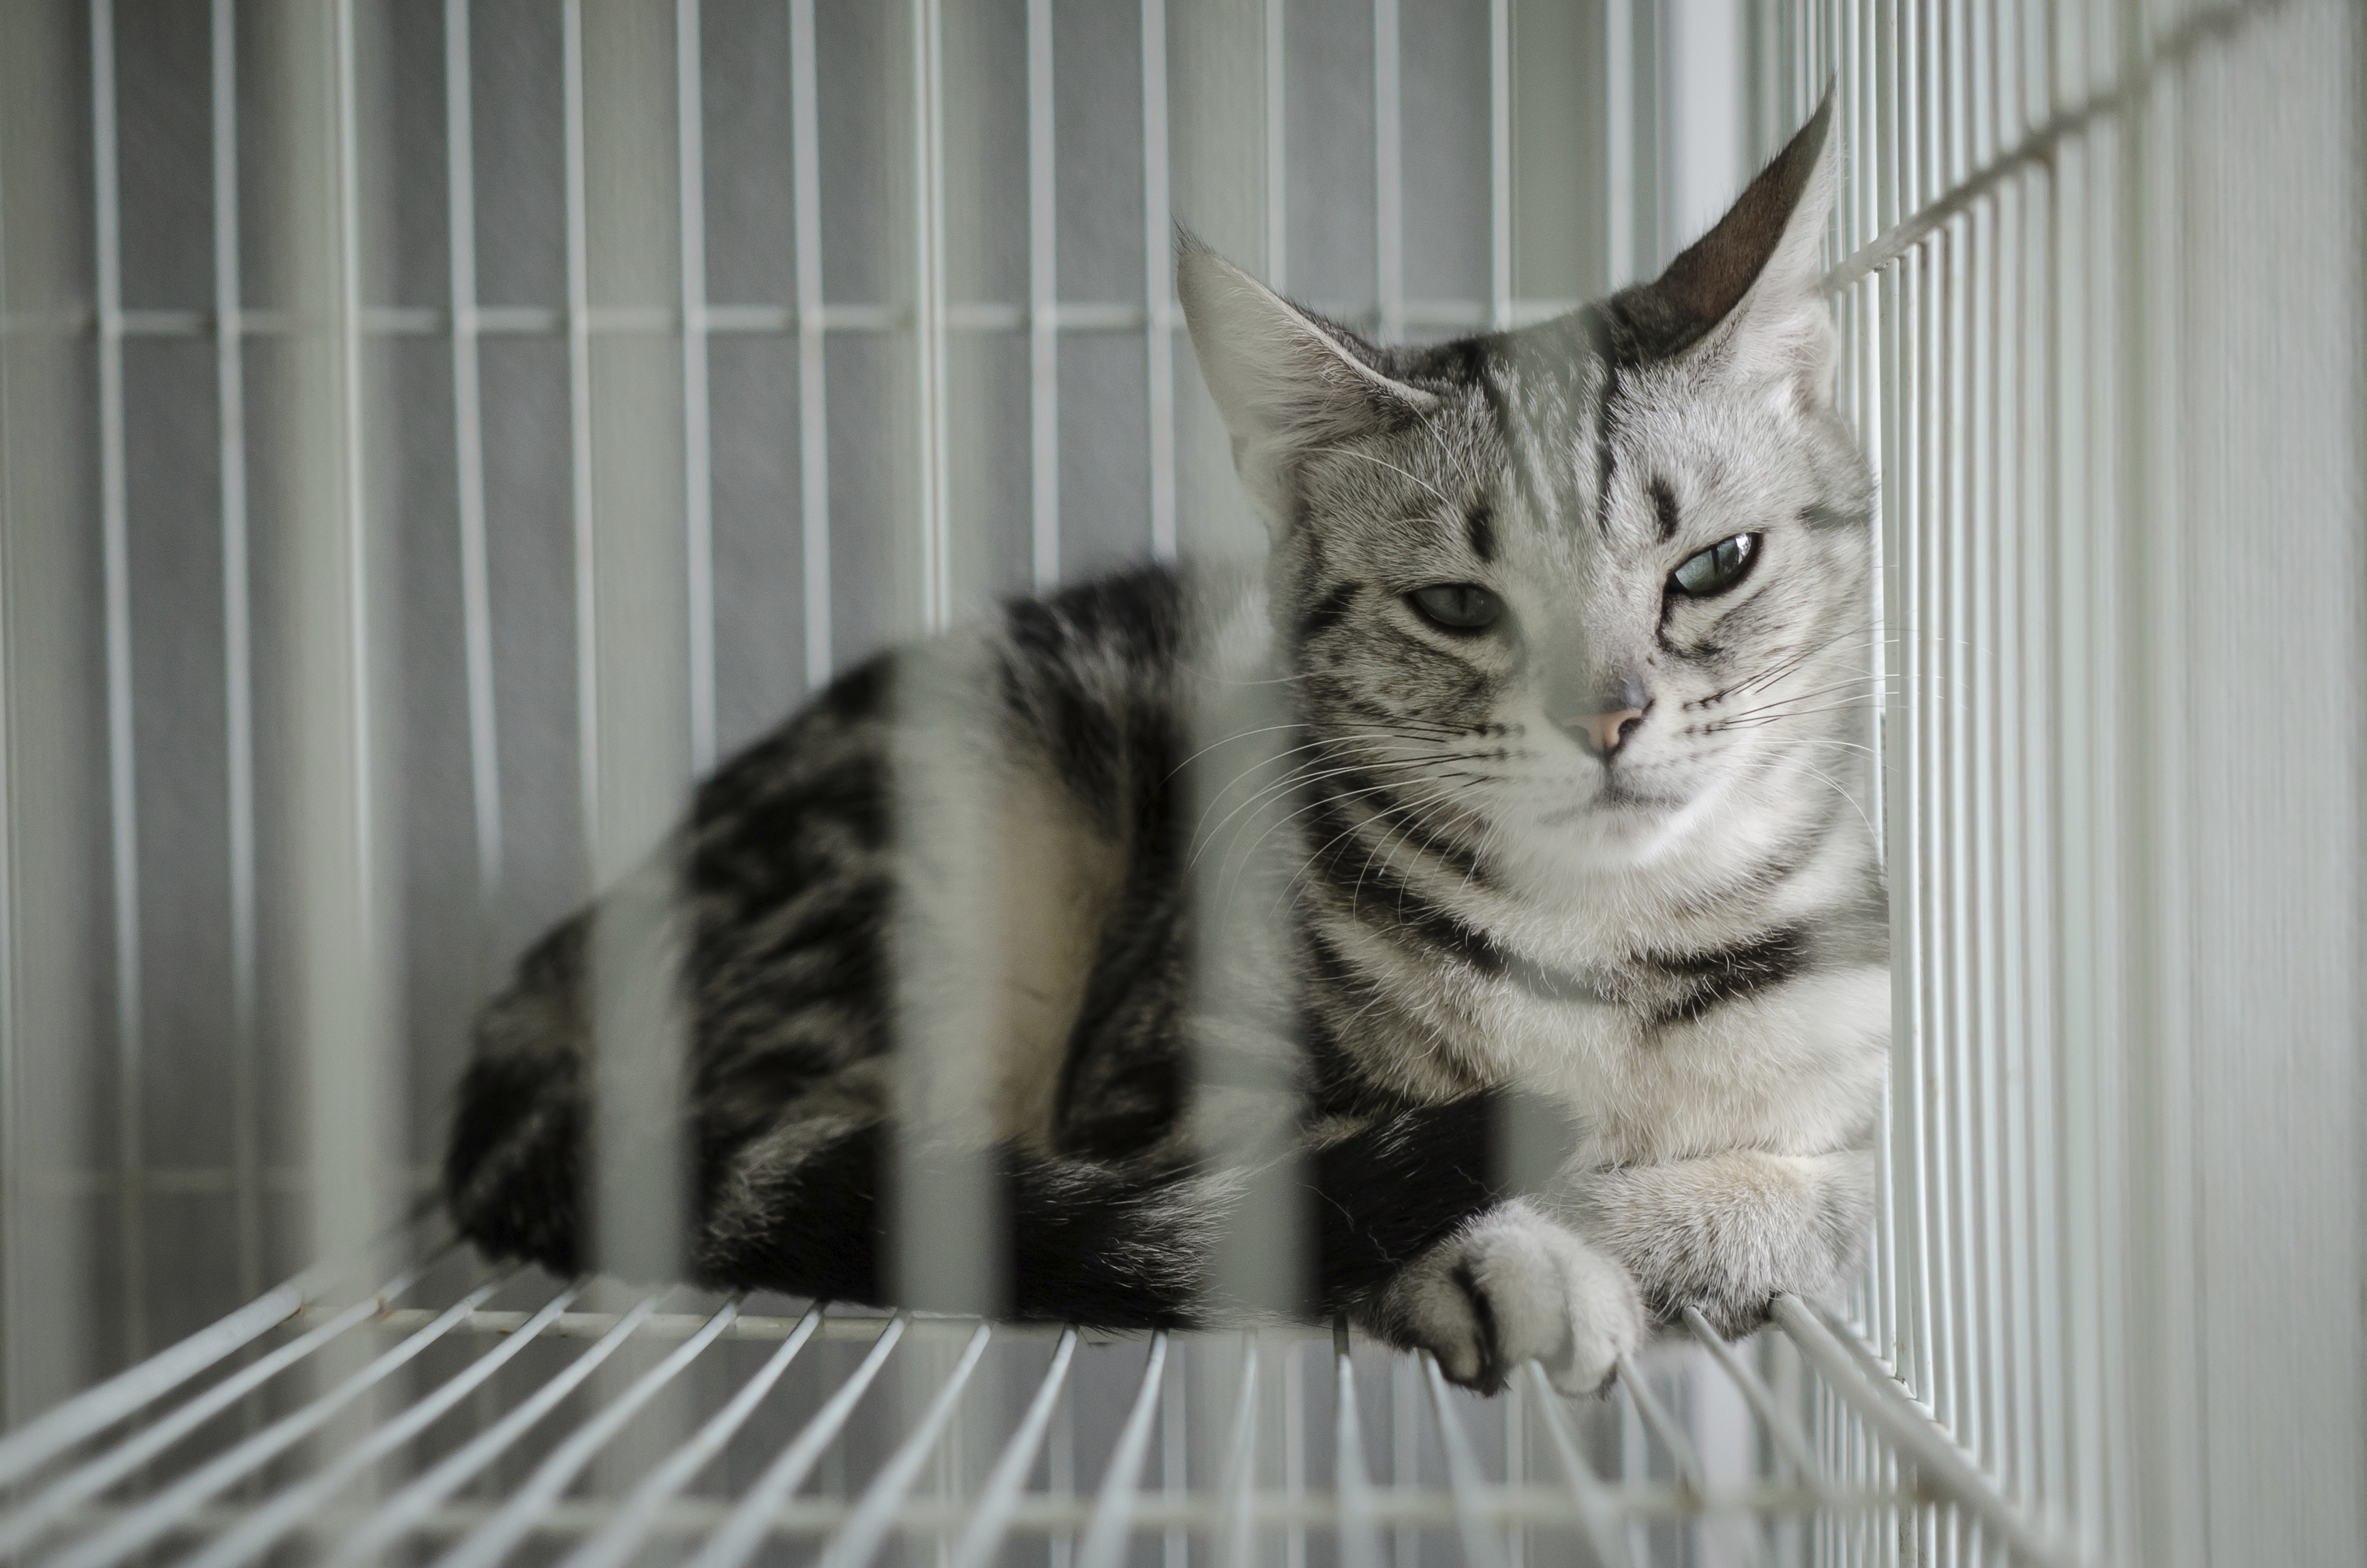 cat_sad_in_cage_grey.jpg